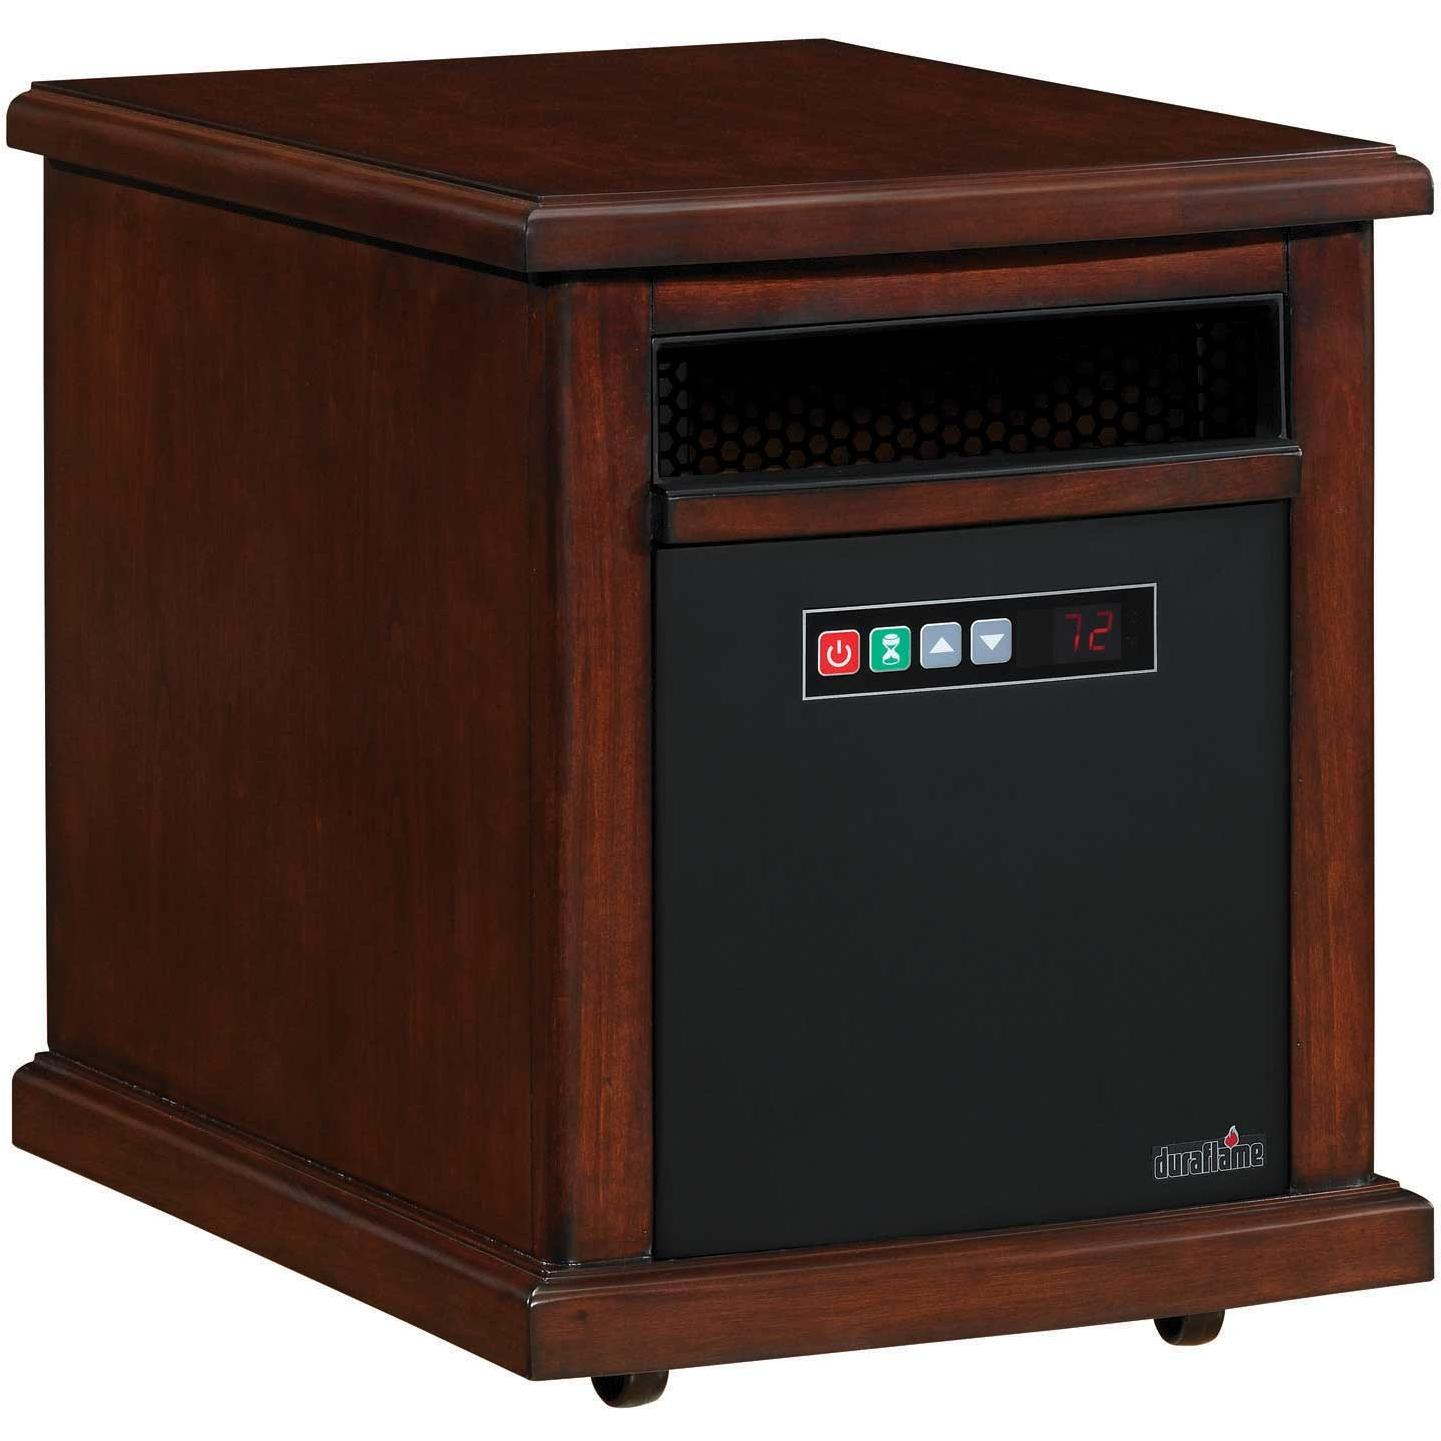 Duraflame 10HM1342-C232 Colby Mobile Electric Heater - Empire Cherry Finish